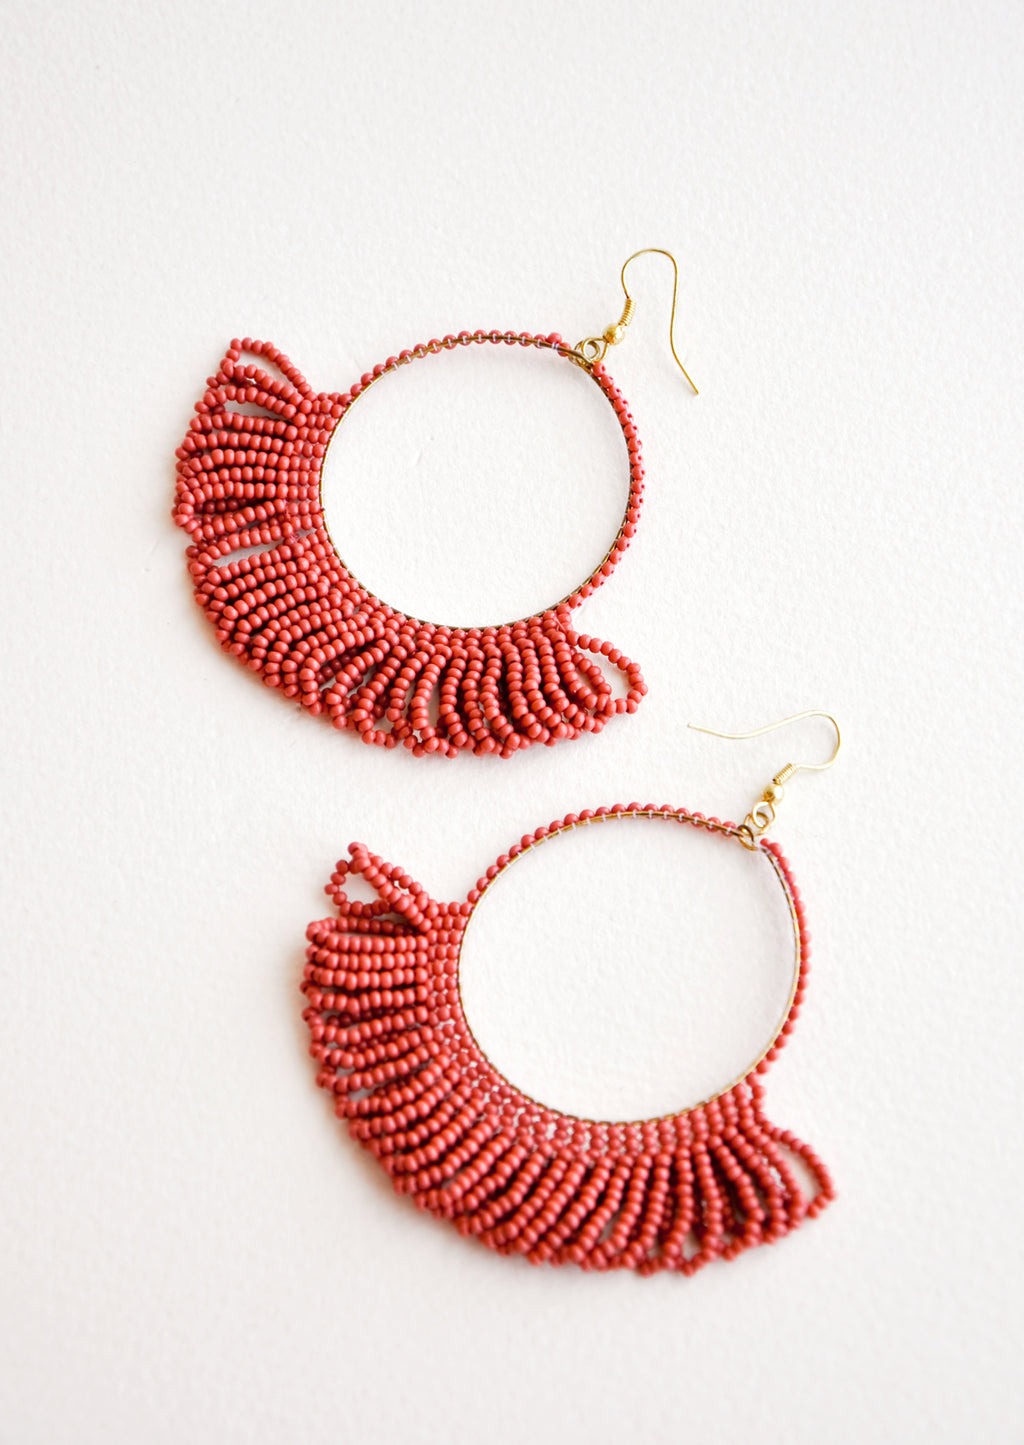 Brick: Dangling hoop earrings featuring dark red beads and accented with hanging beaded, looped fringe.